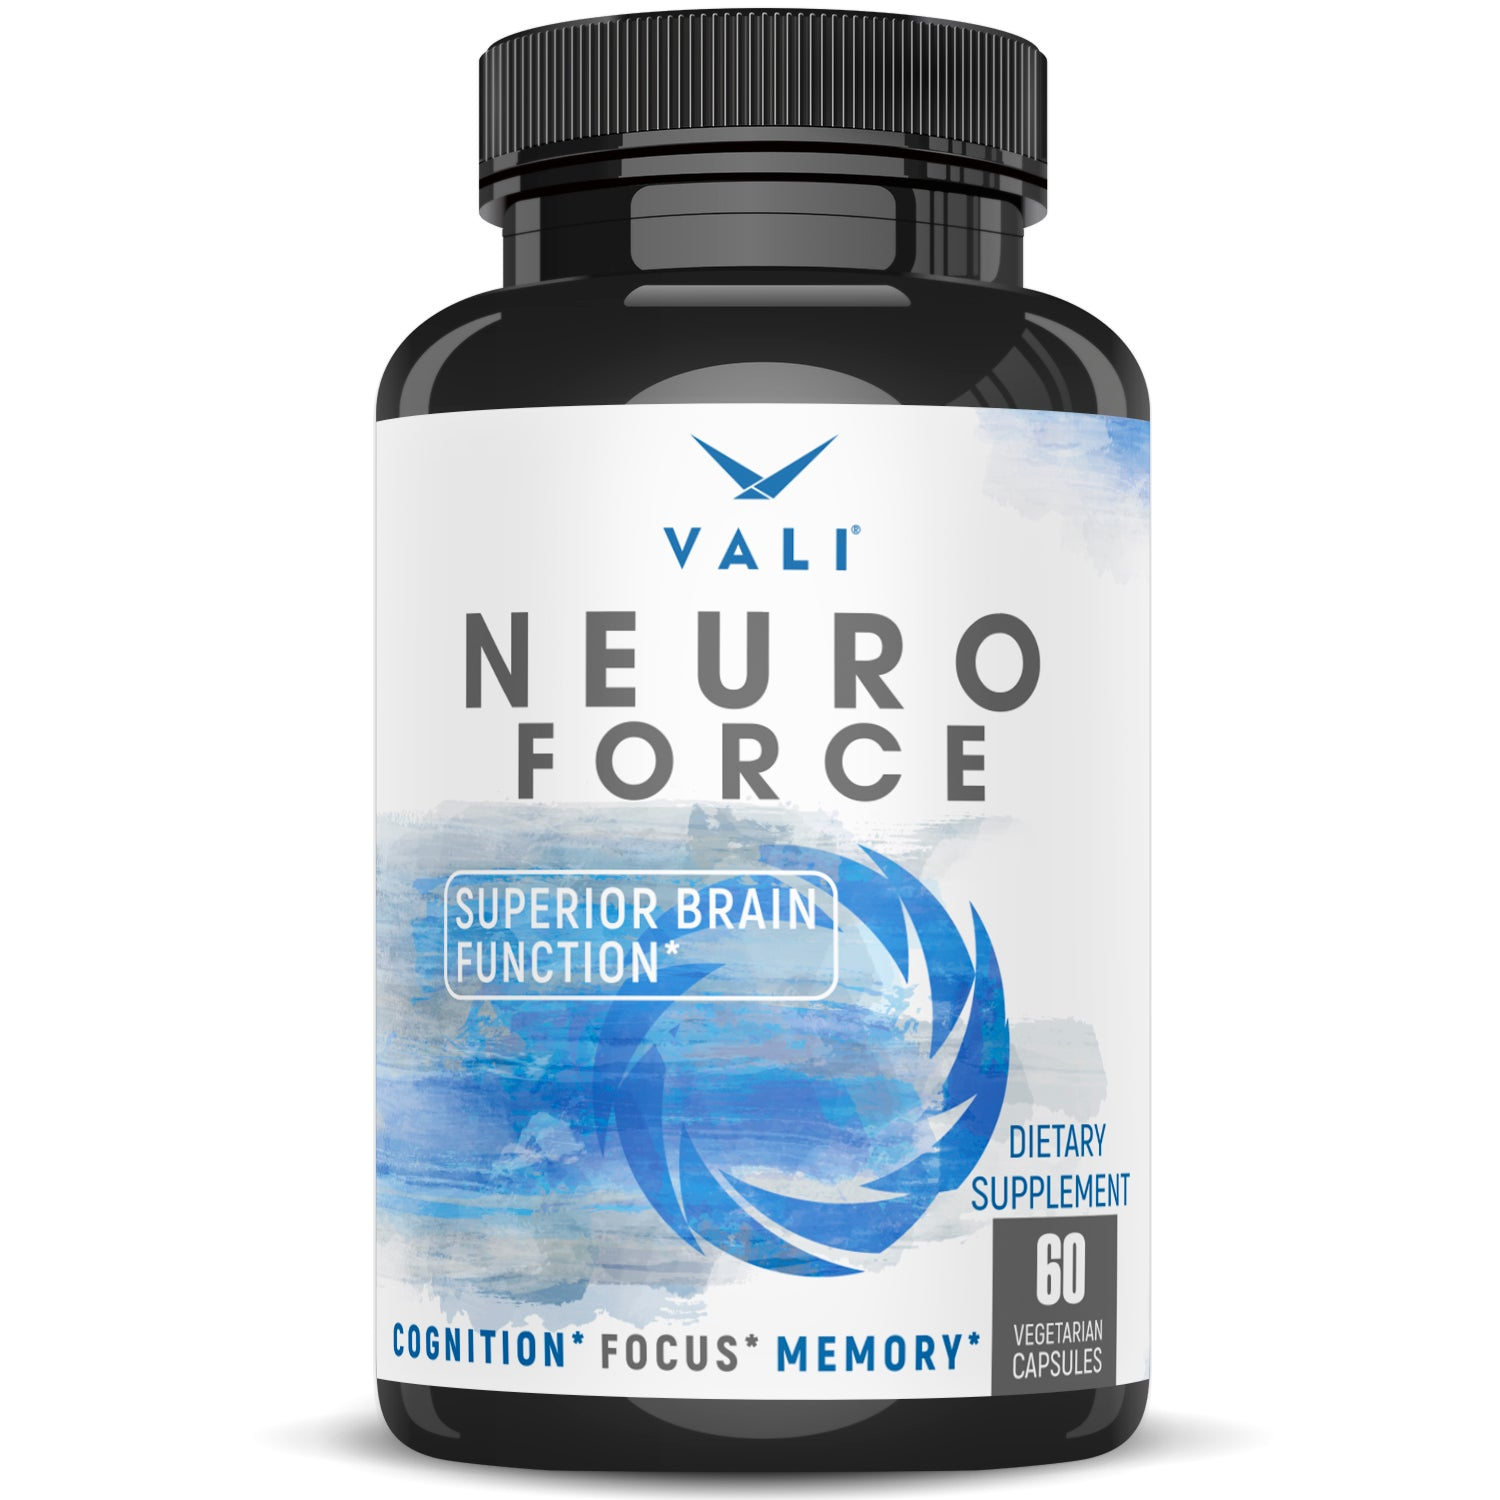 VALI Neuro Force - Nootropic Cognitive Support